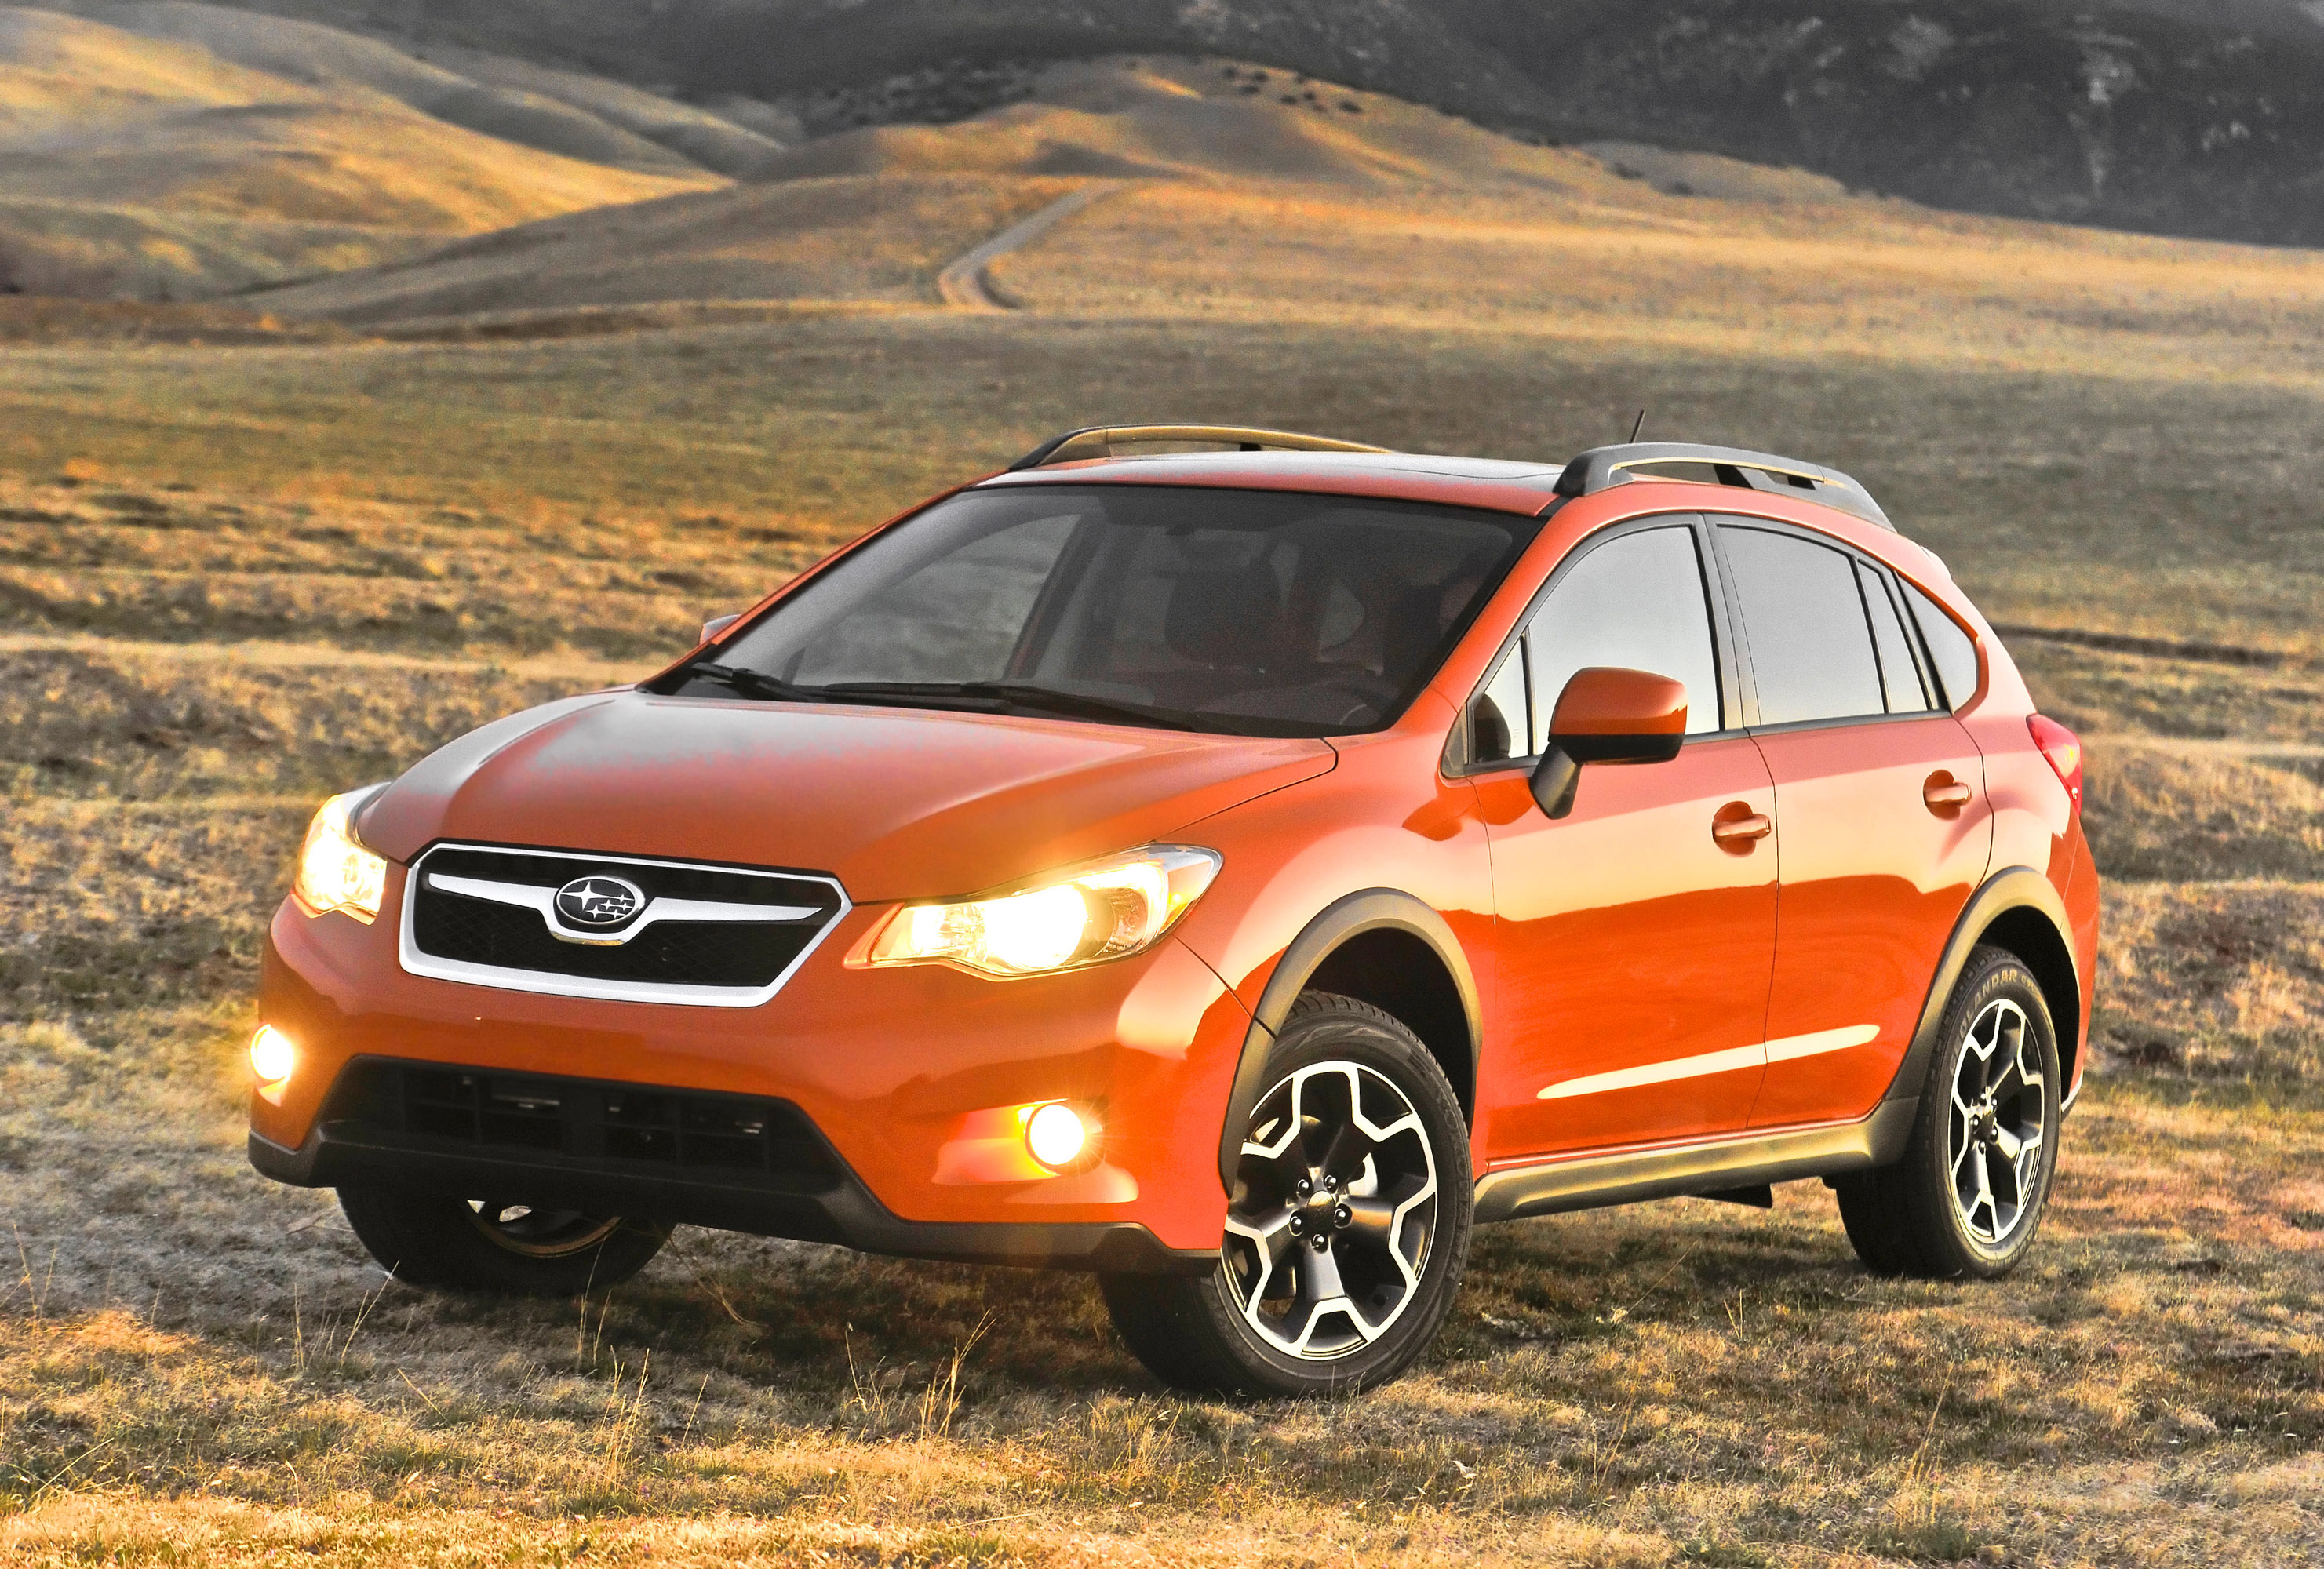 2013 Subaru Xv Crosstrek Pricing Announced